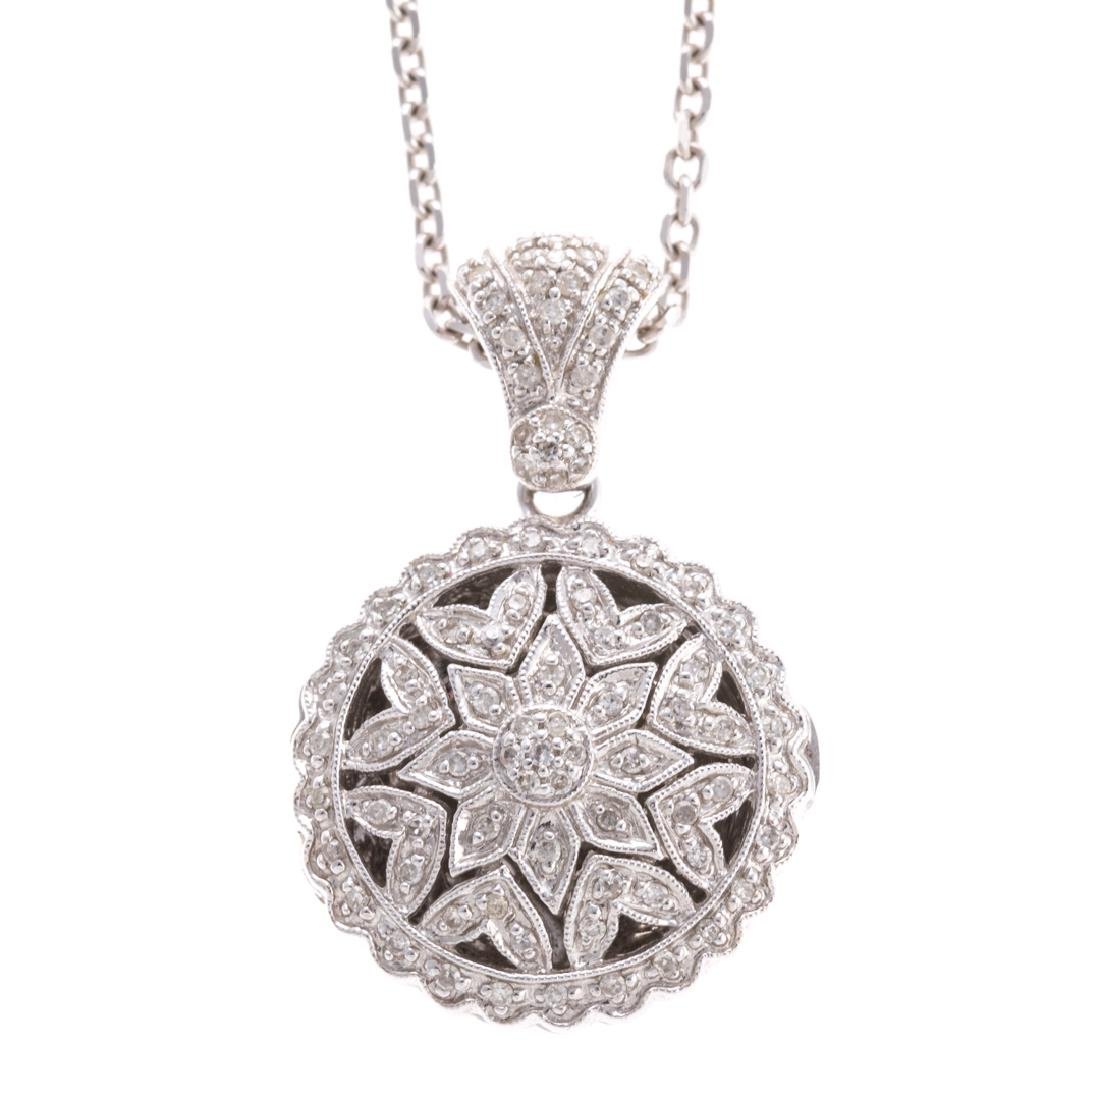 A Lady's 14K Diamond Locket & Chain